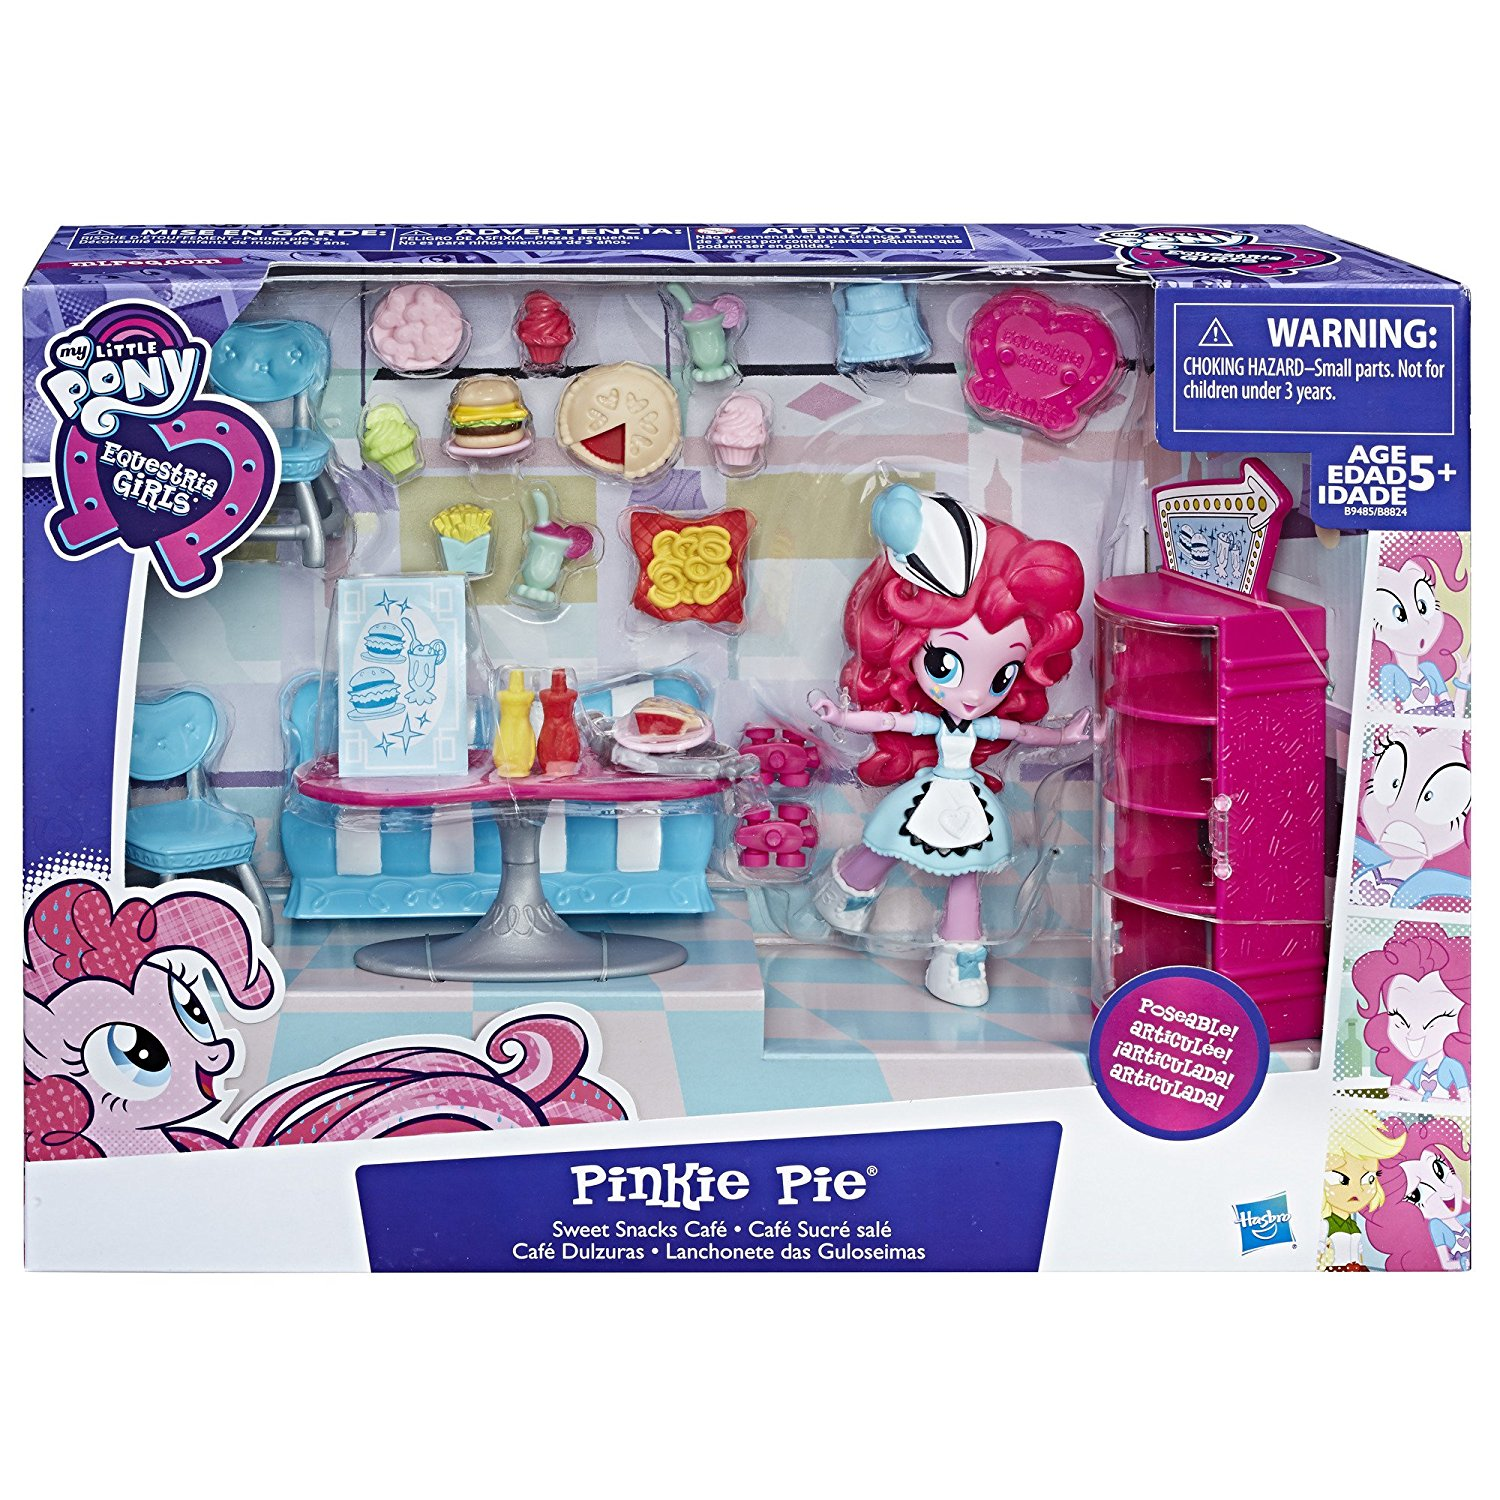 4 New Equestria Girls Minis Mall Collection Sets Listed : MLP Merch